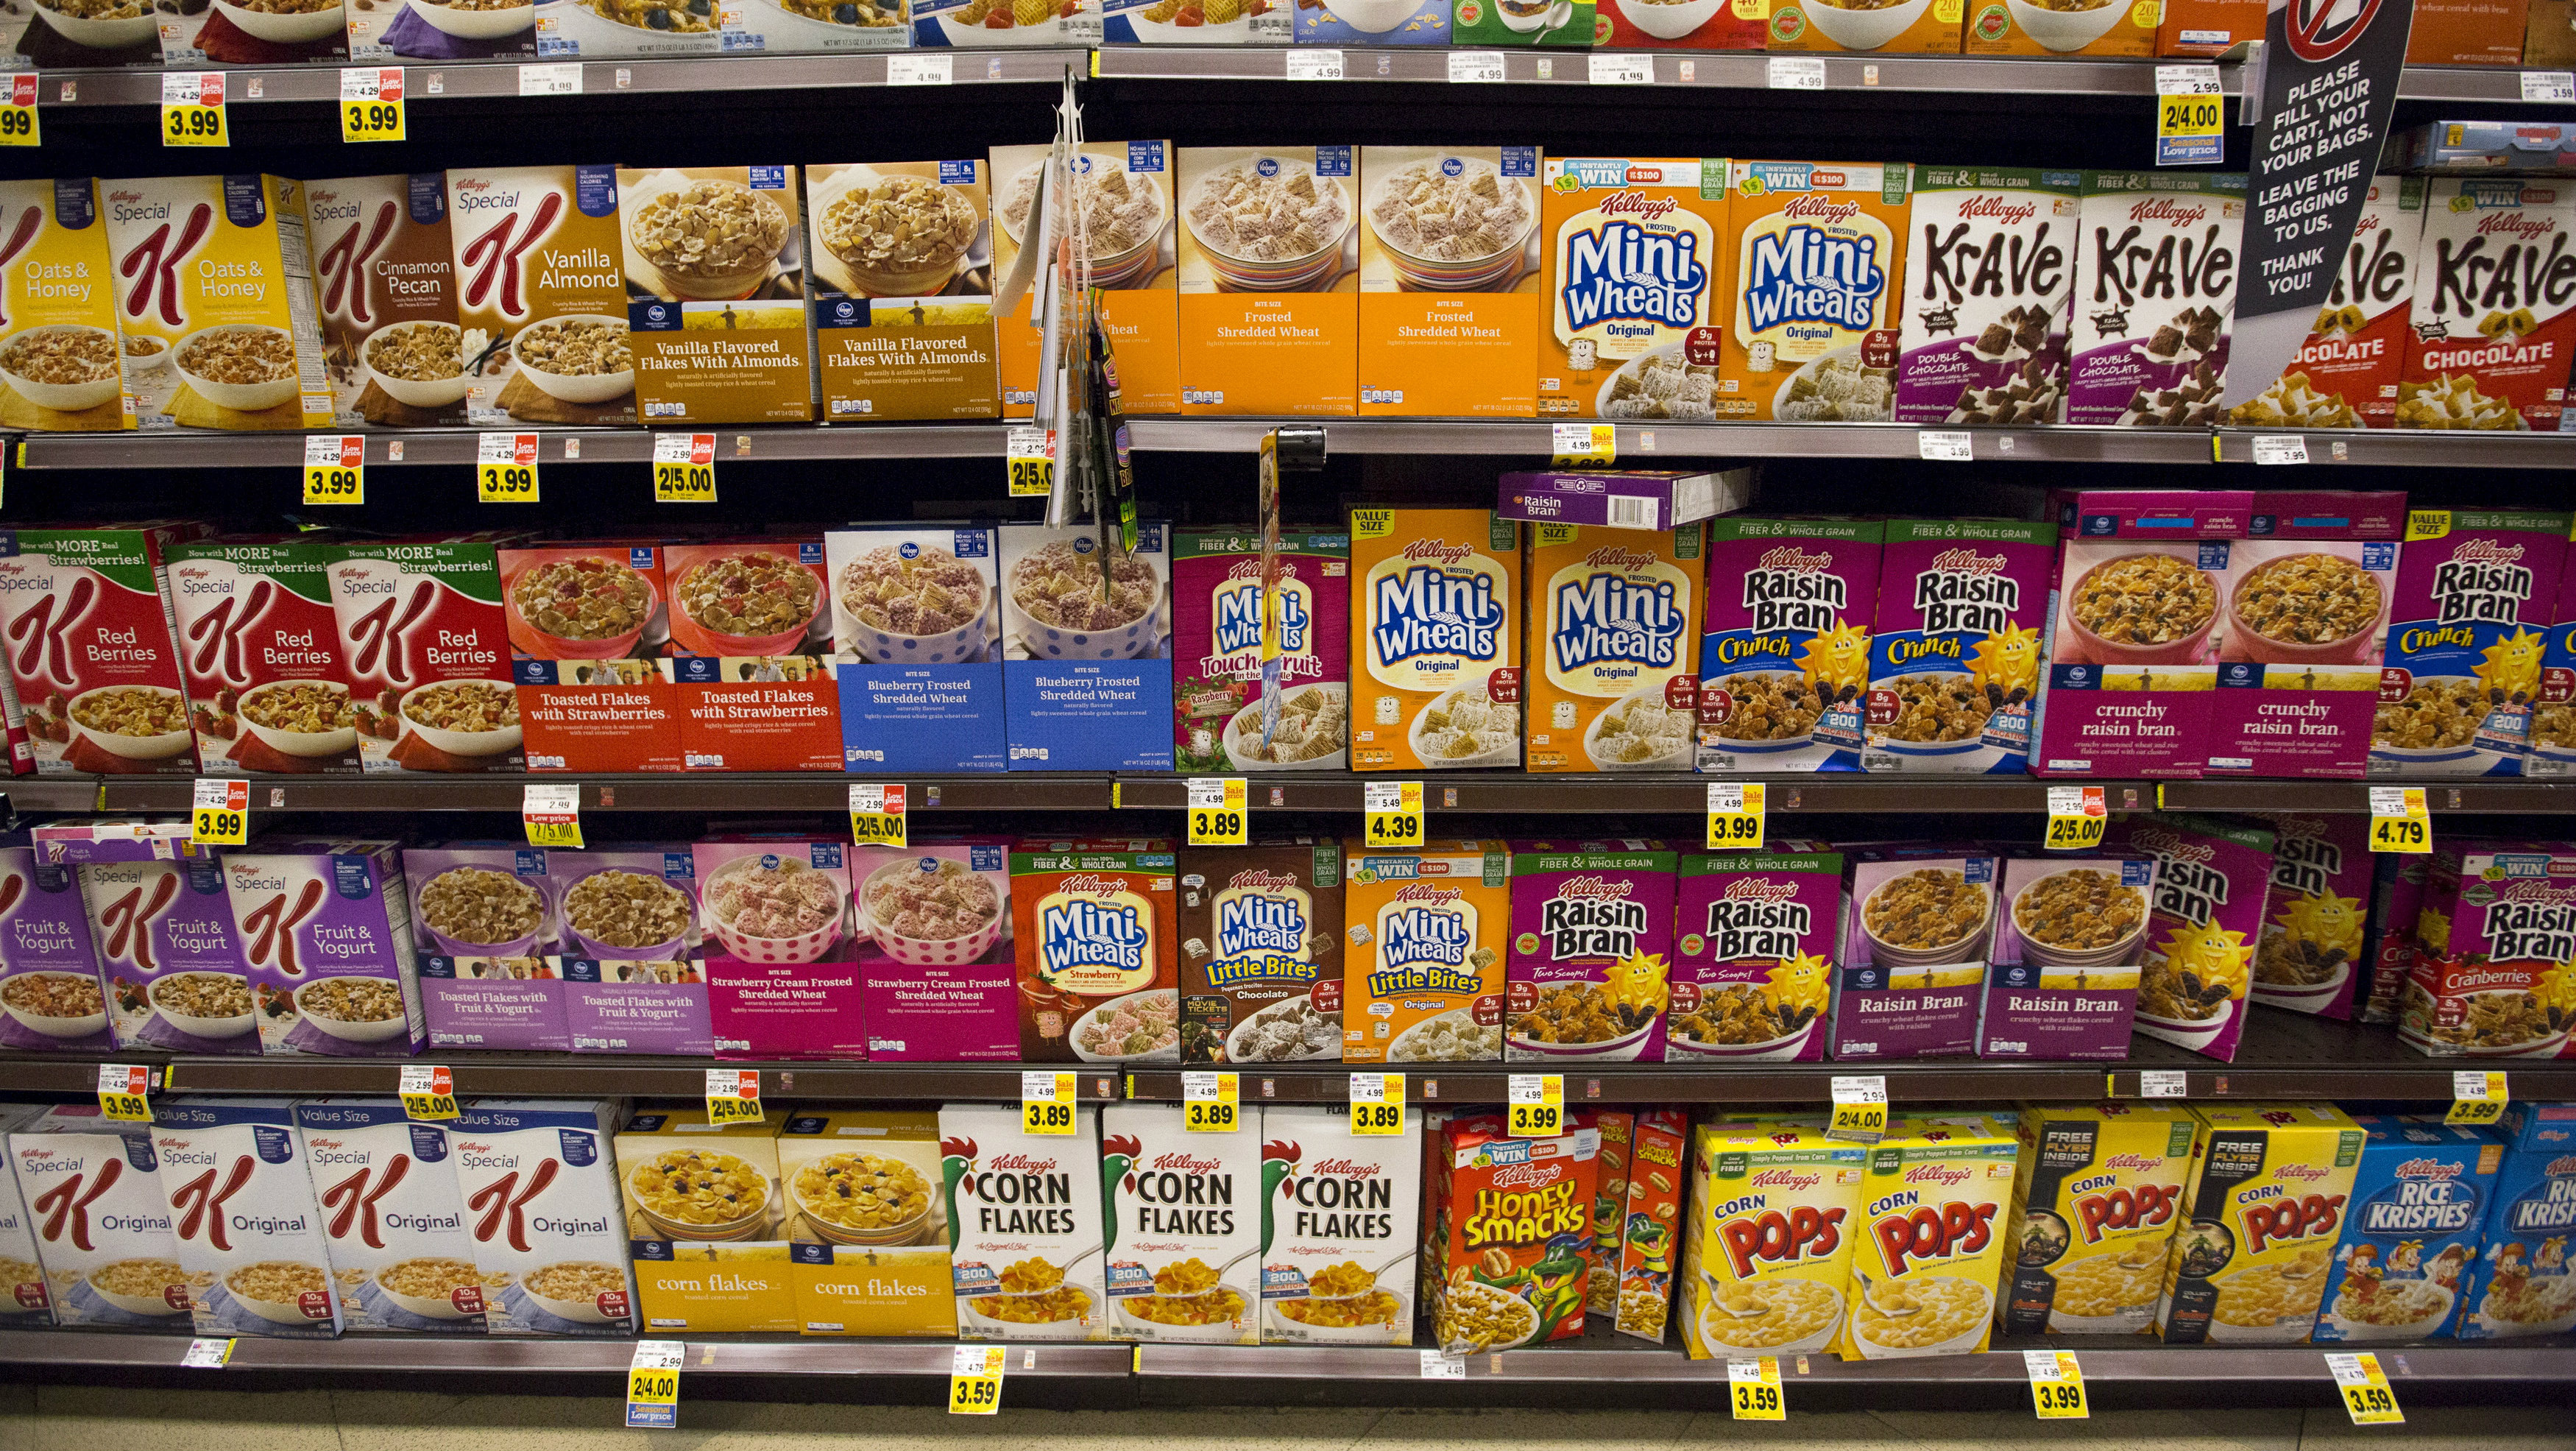 Various types of Kellogg'så cereals are pictured at a Ralphs grocery store in Pasadena, California August 3, 2015. REUTERS/Mario Anzuoni